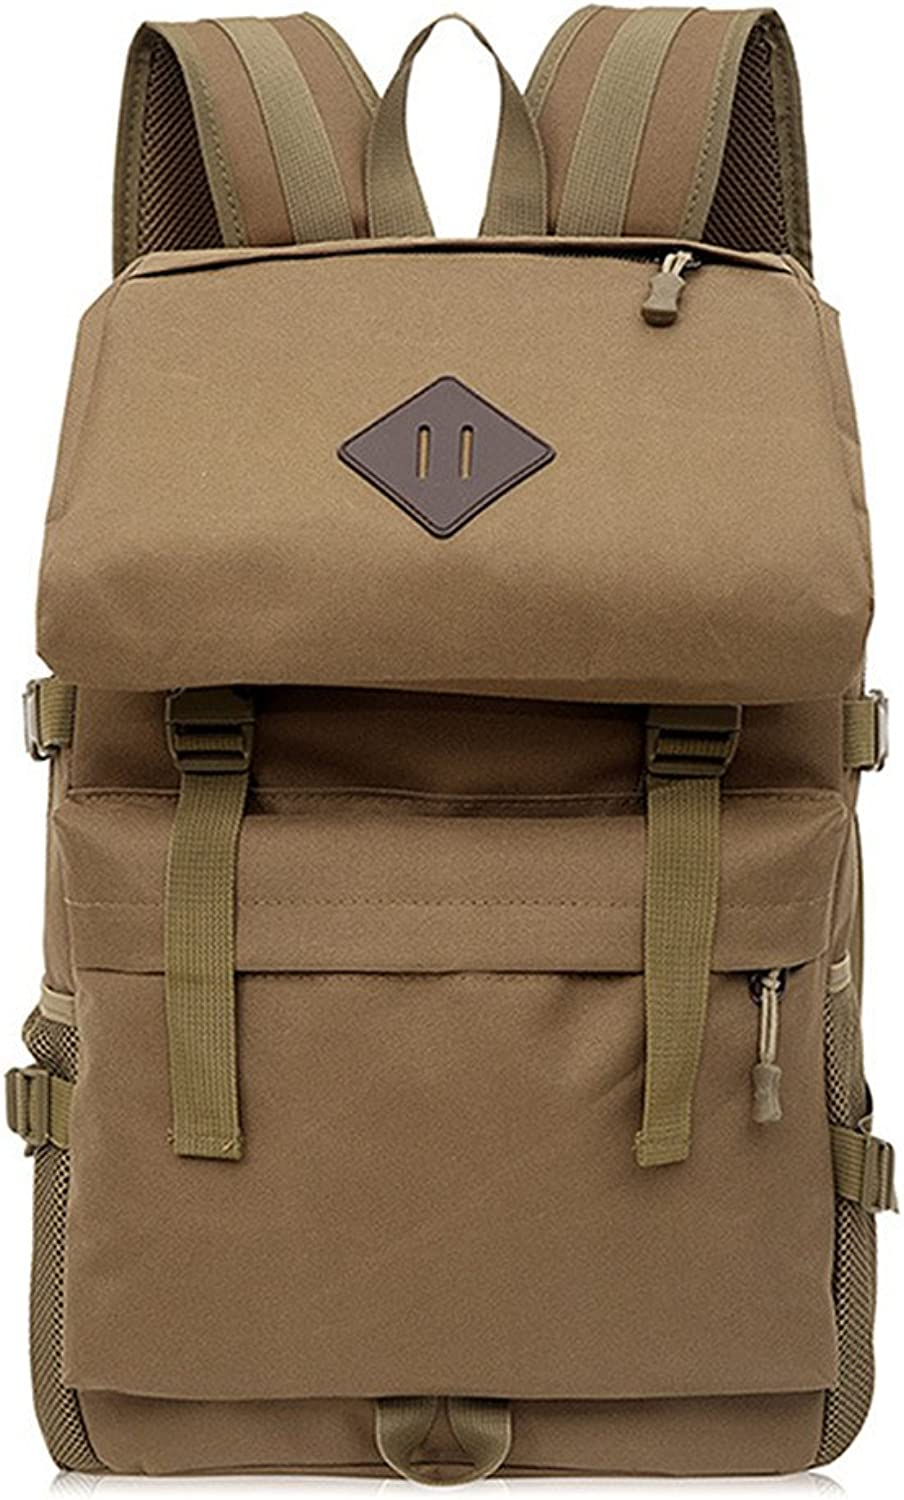 Backpacks Camouflage MultiFunction Mountaineering Bag Travel Camping Hiking Backpack Sports Backpack Waterproof Mountaineering Bag (color   Brown)